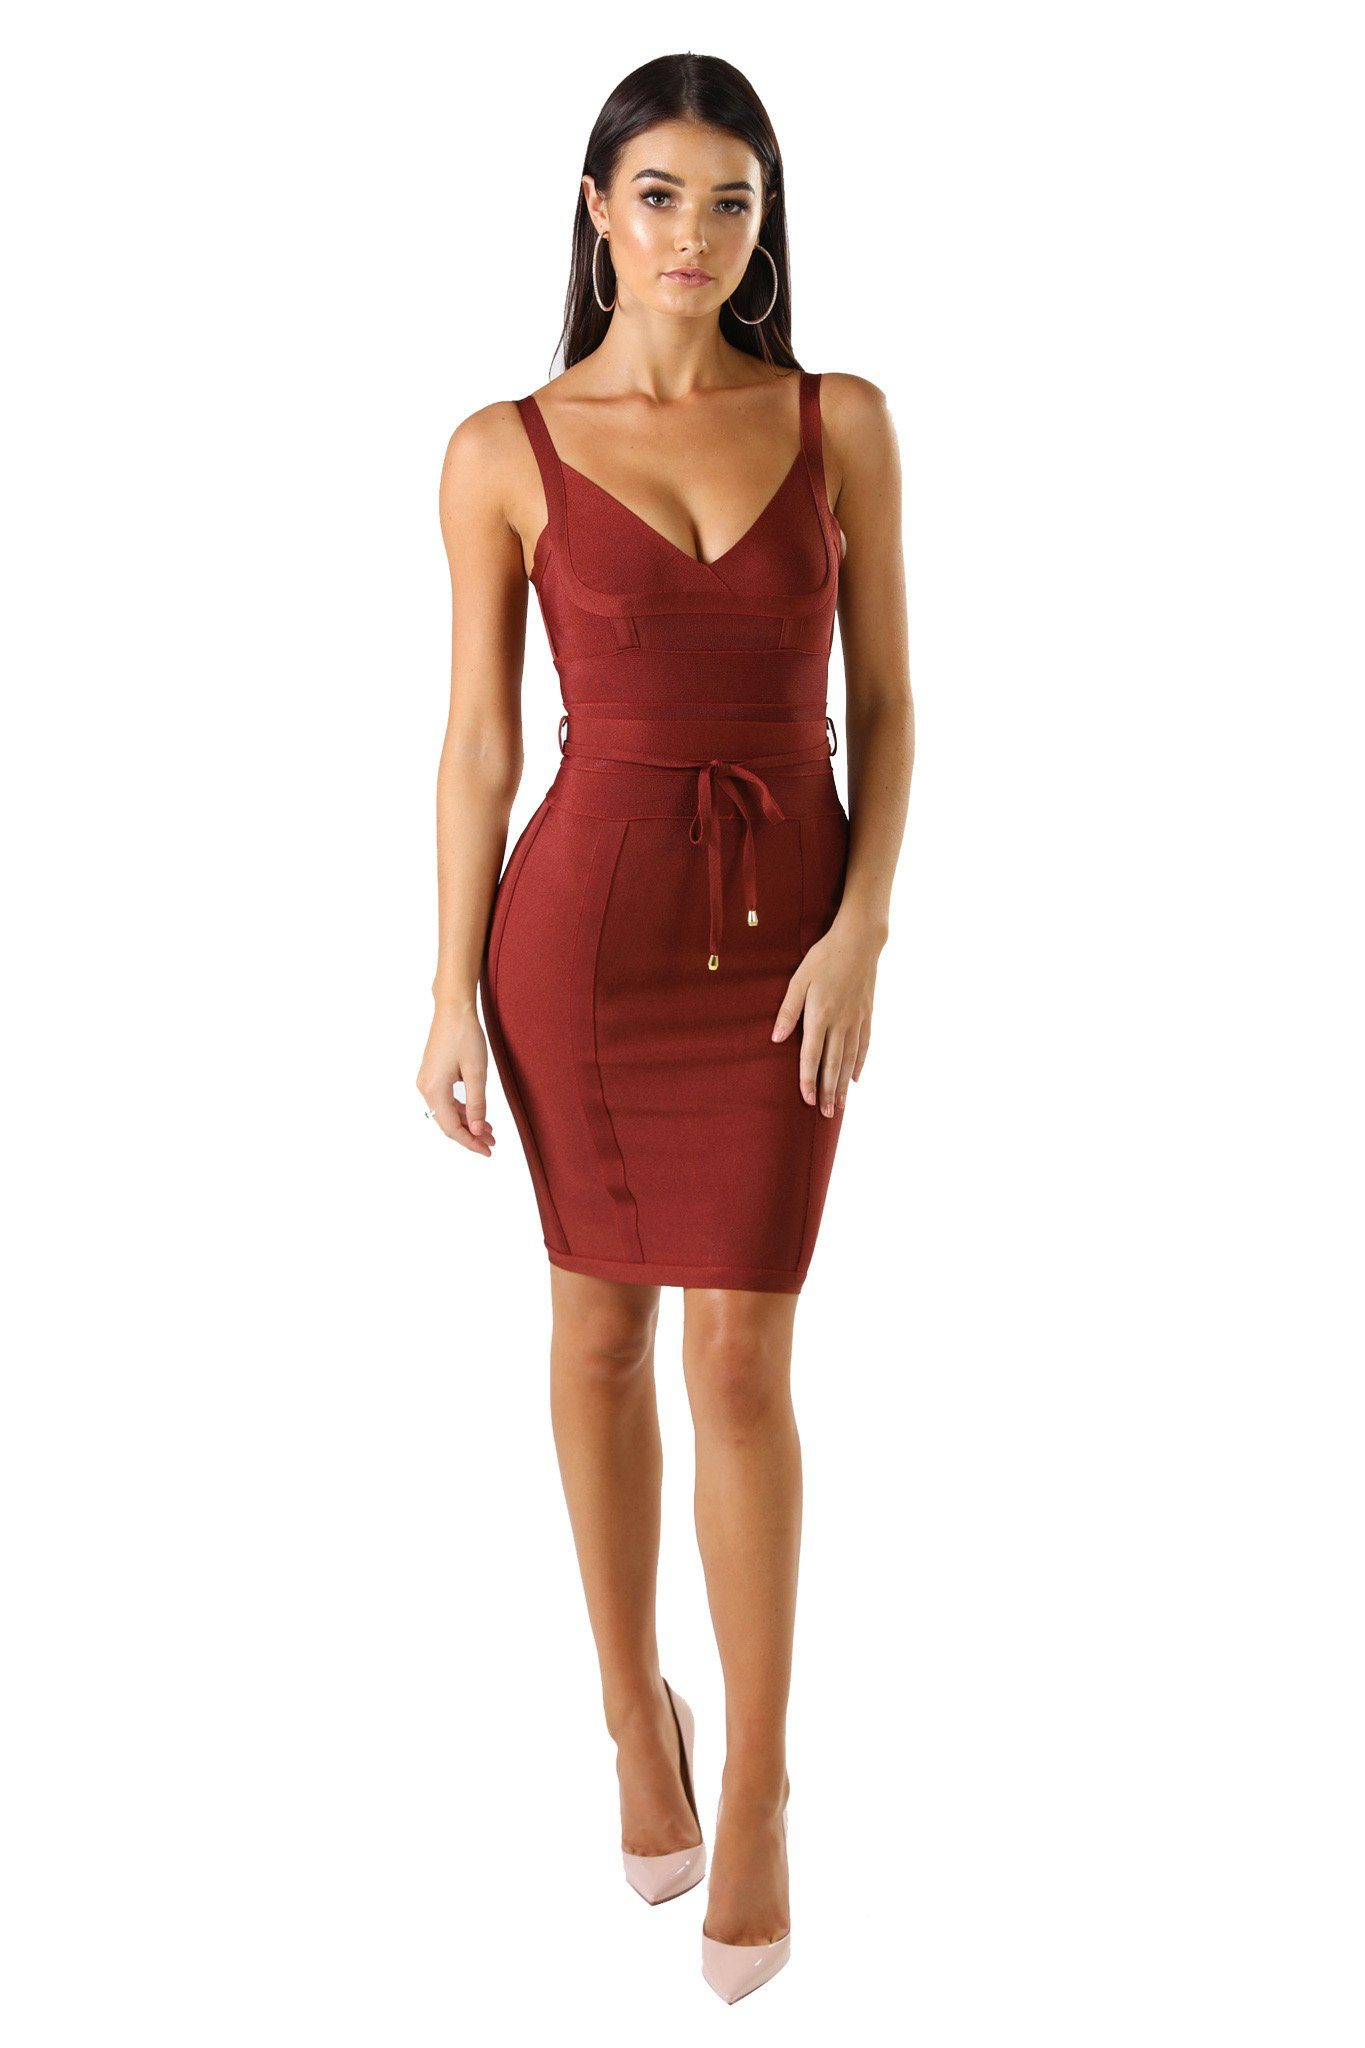 Maroon colored mini sleeveless bandage dress with thin shoulder straps, thin tie up bandage belt, and full-length back zipper